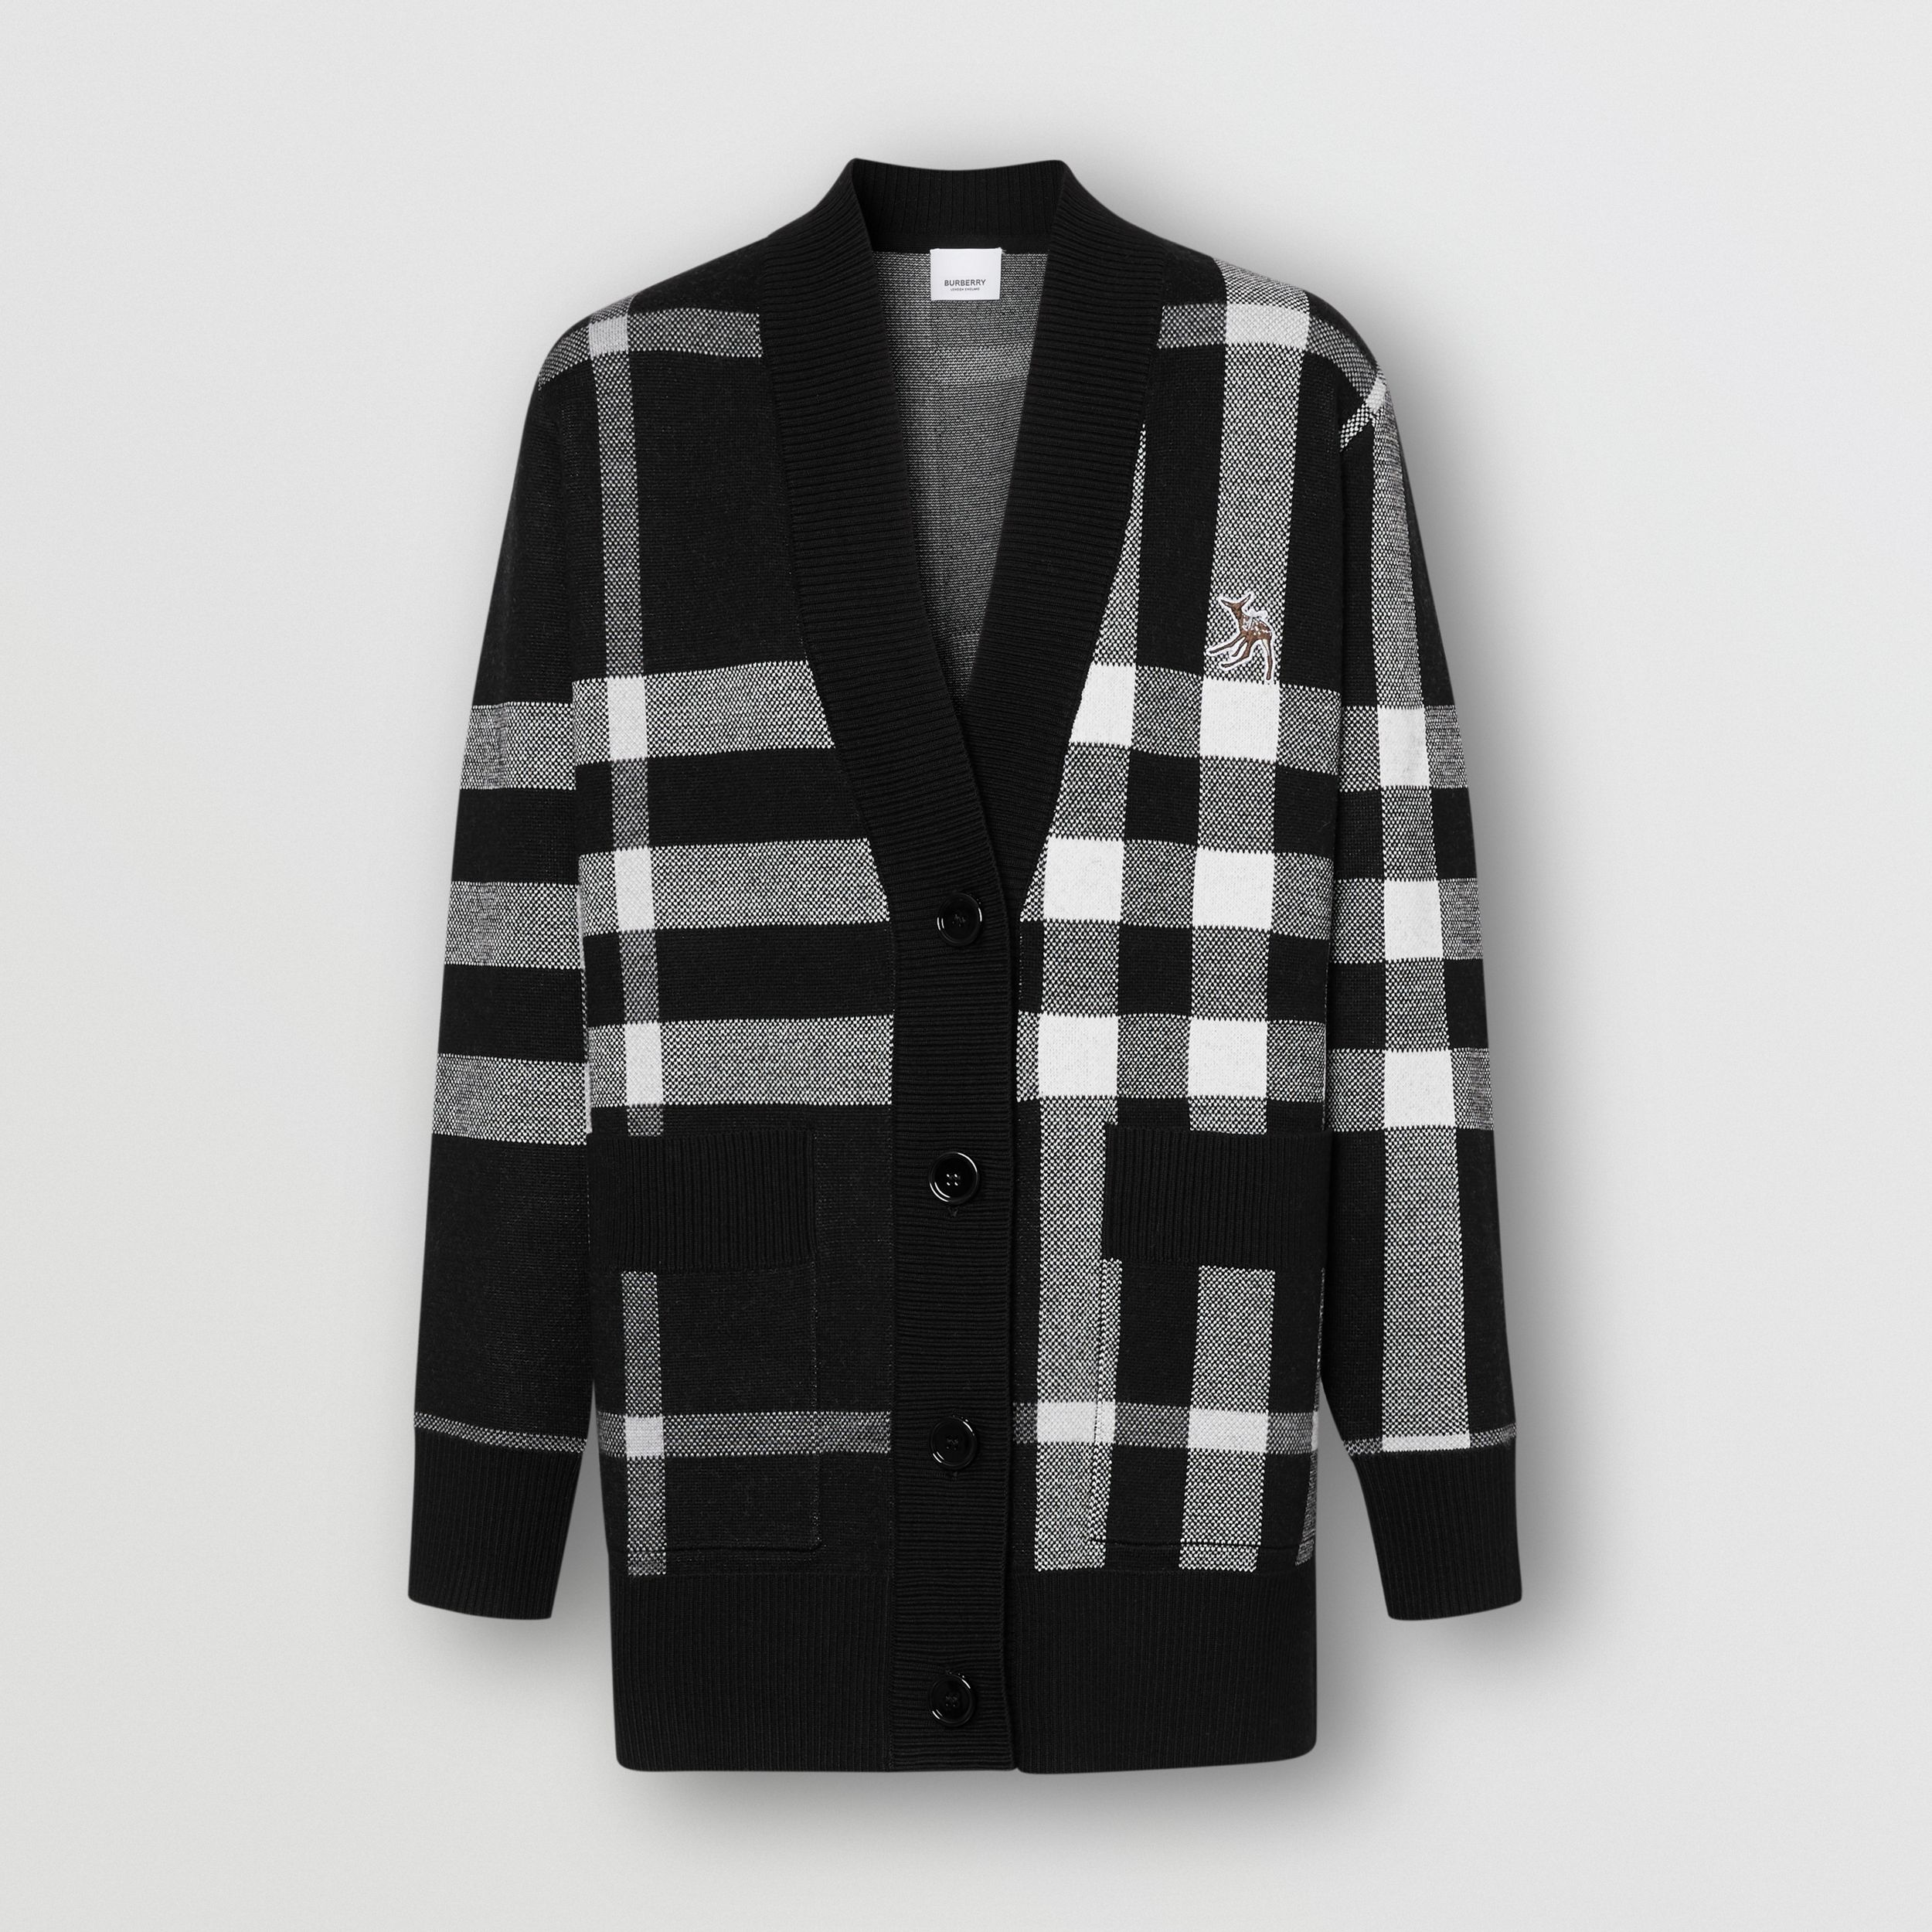 Deer Motif Check Wool Blend Jacquard Cardigan in Black - Women | Burberry - 2